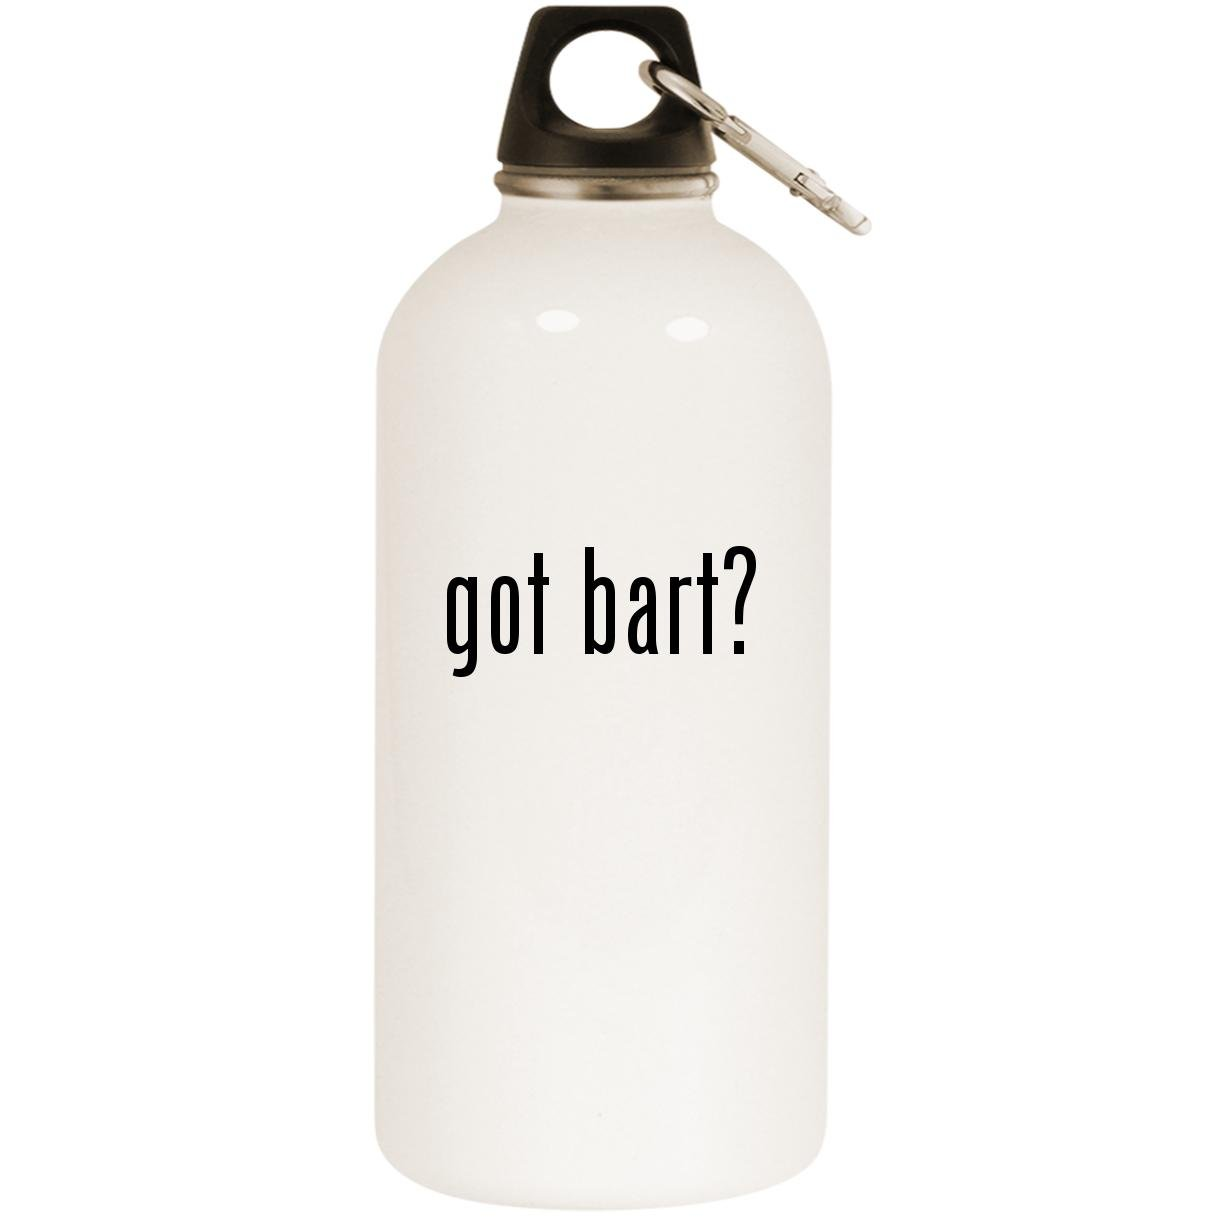 Molandra Products got bart? - White 20oz Stainless Steel Water Bottle with Carabiner by Molandra Products